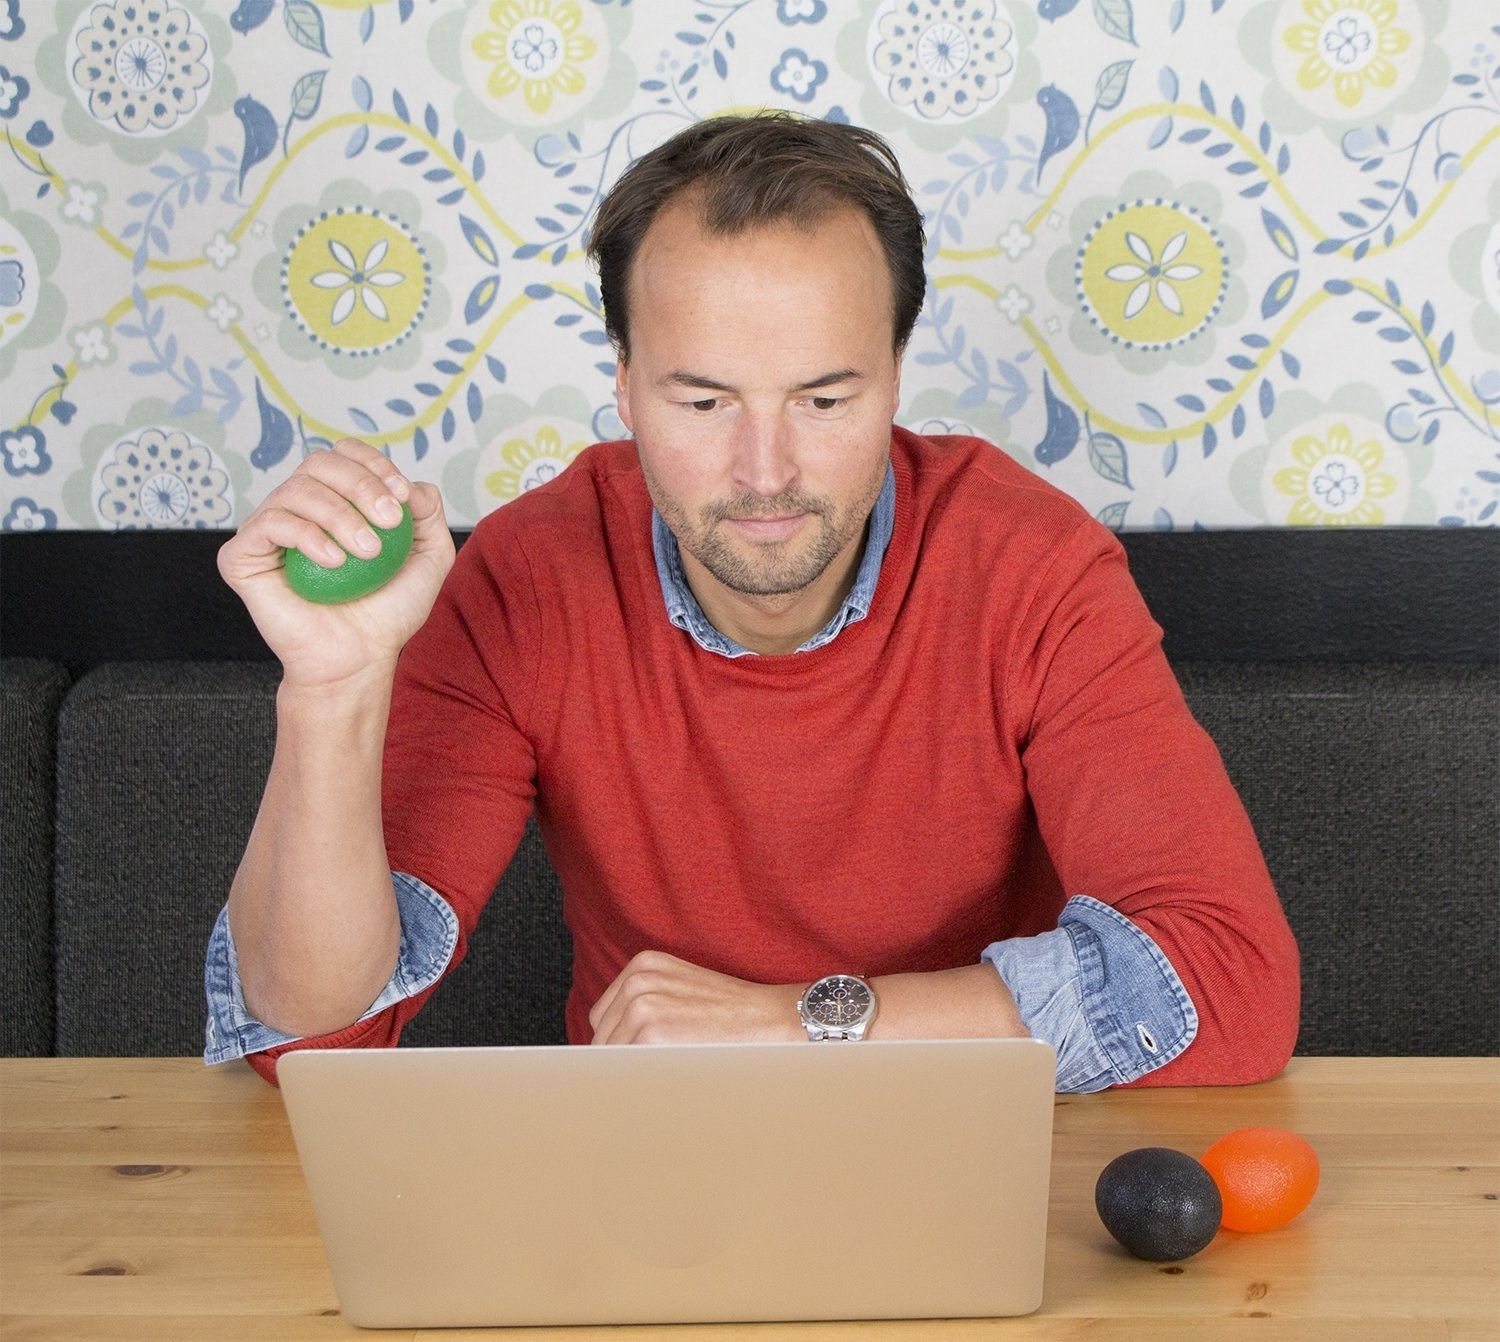 "Promising review: ""I work at a desk about 11–12 hours a day with TONS of typing. Since using these, I've noticed less pain and strain in my wrists and hands, and they are also a great stress reliever. I've got people at my office hooked. I really like the yellow and red one, but I have smaller, weaker hands so I'm working my way up to the firmest blue one. In terms of the size, I also think they're perfect. Pretty much what I expected, I think they're totally worth the price."" —Petite LoebGet a three-pack from Amazon for $9.99+ (available in three sizes)."